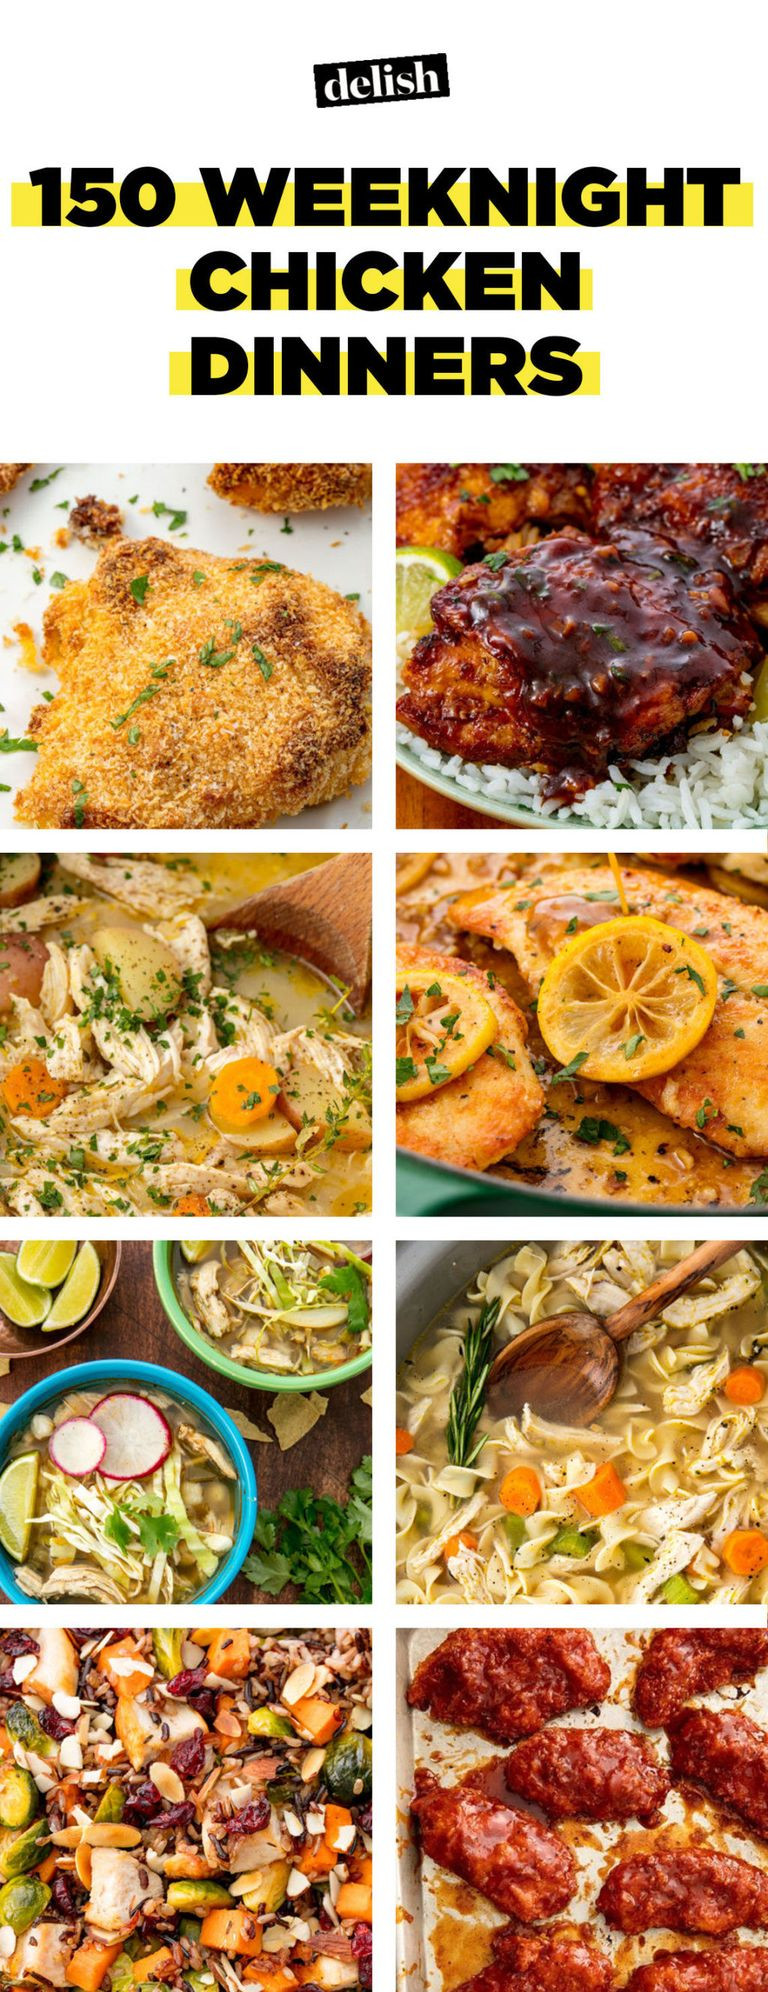 Easy Chicken Dinners  90 Easy Chicken Dinner Recipes — Simple Ideas for Quick